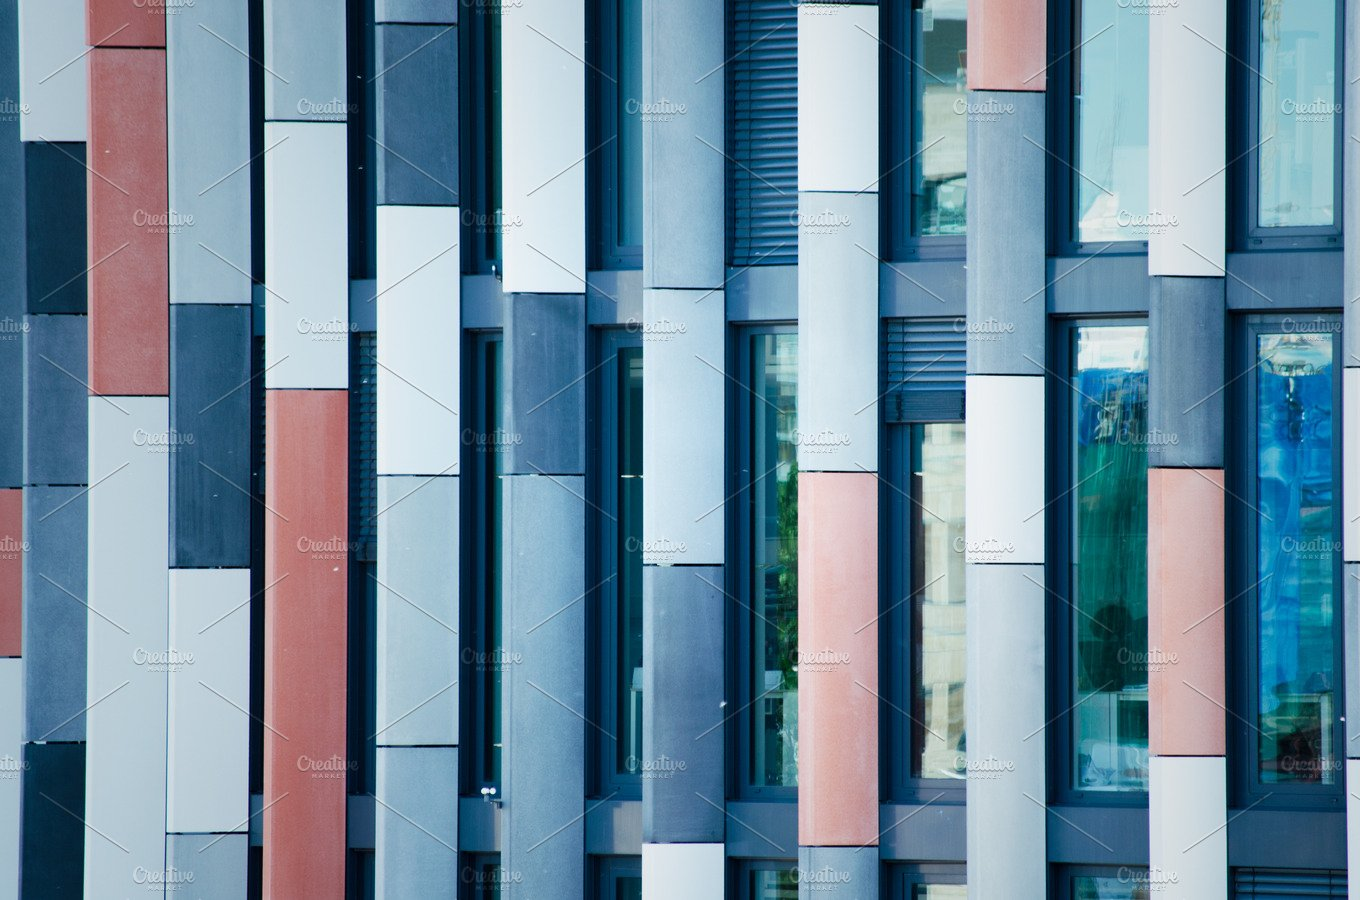 Modern Facade Architecture Photos Creative Market